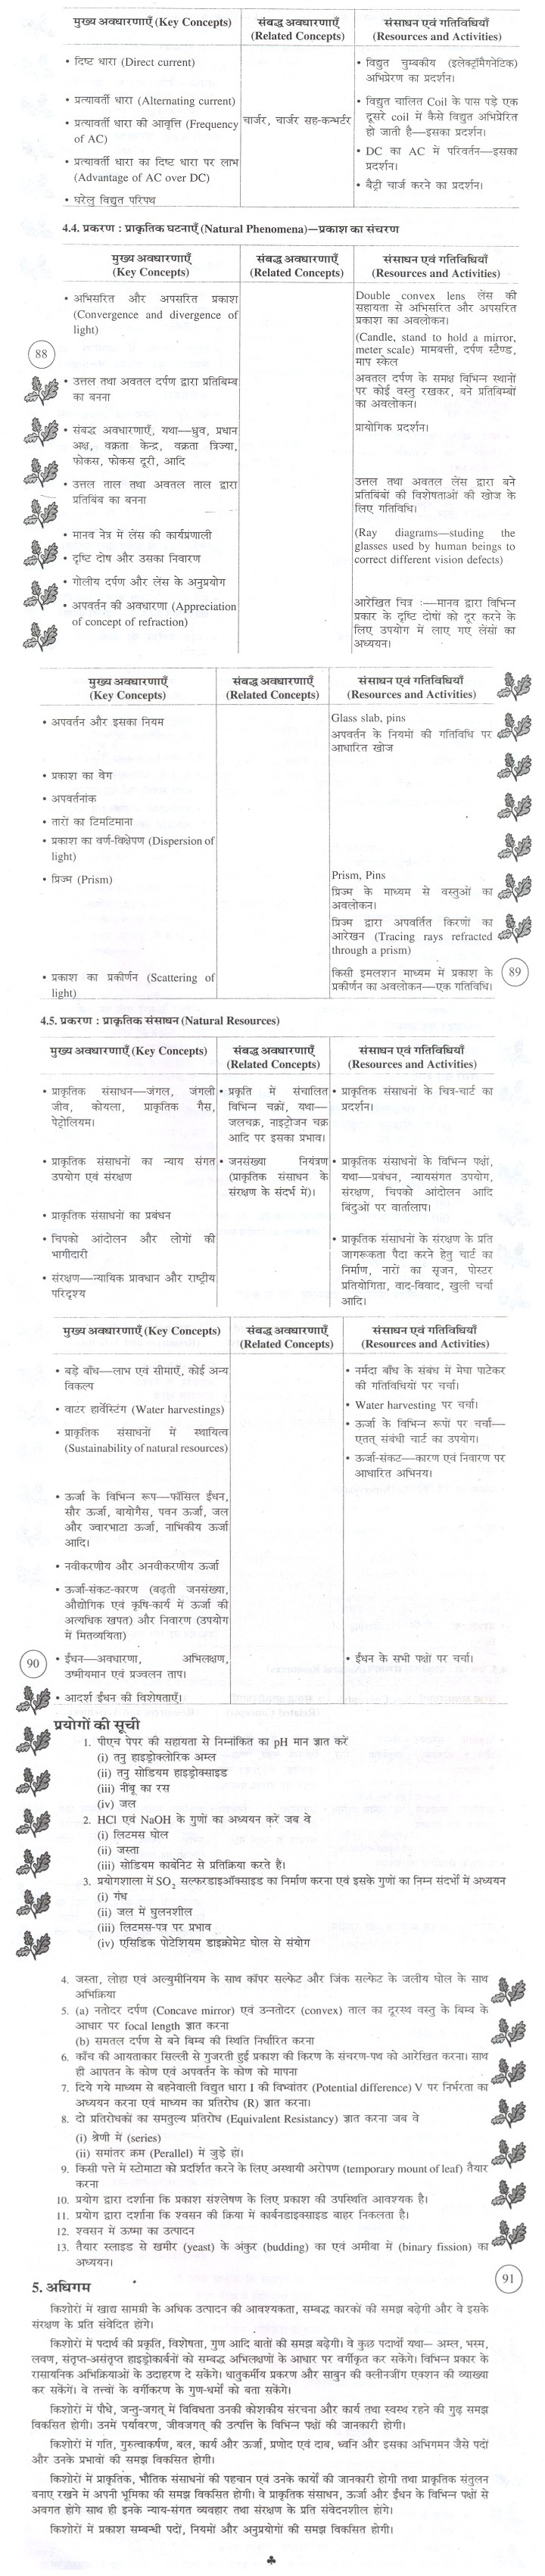 Bihar Board Secondary Syllabus - Science